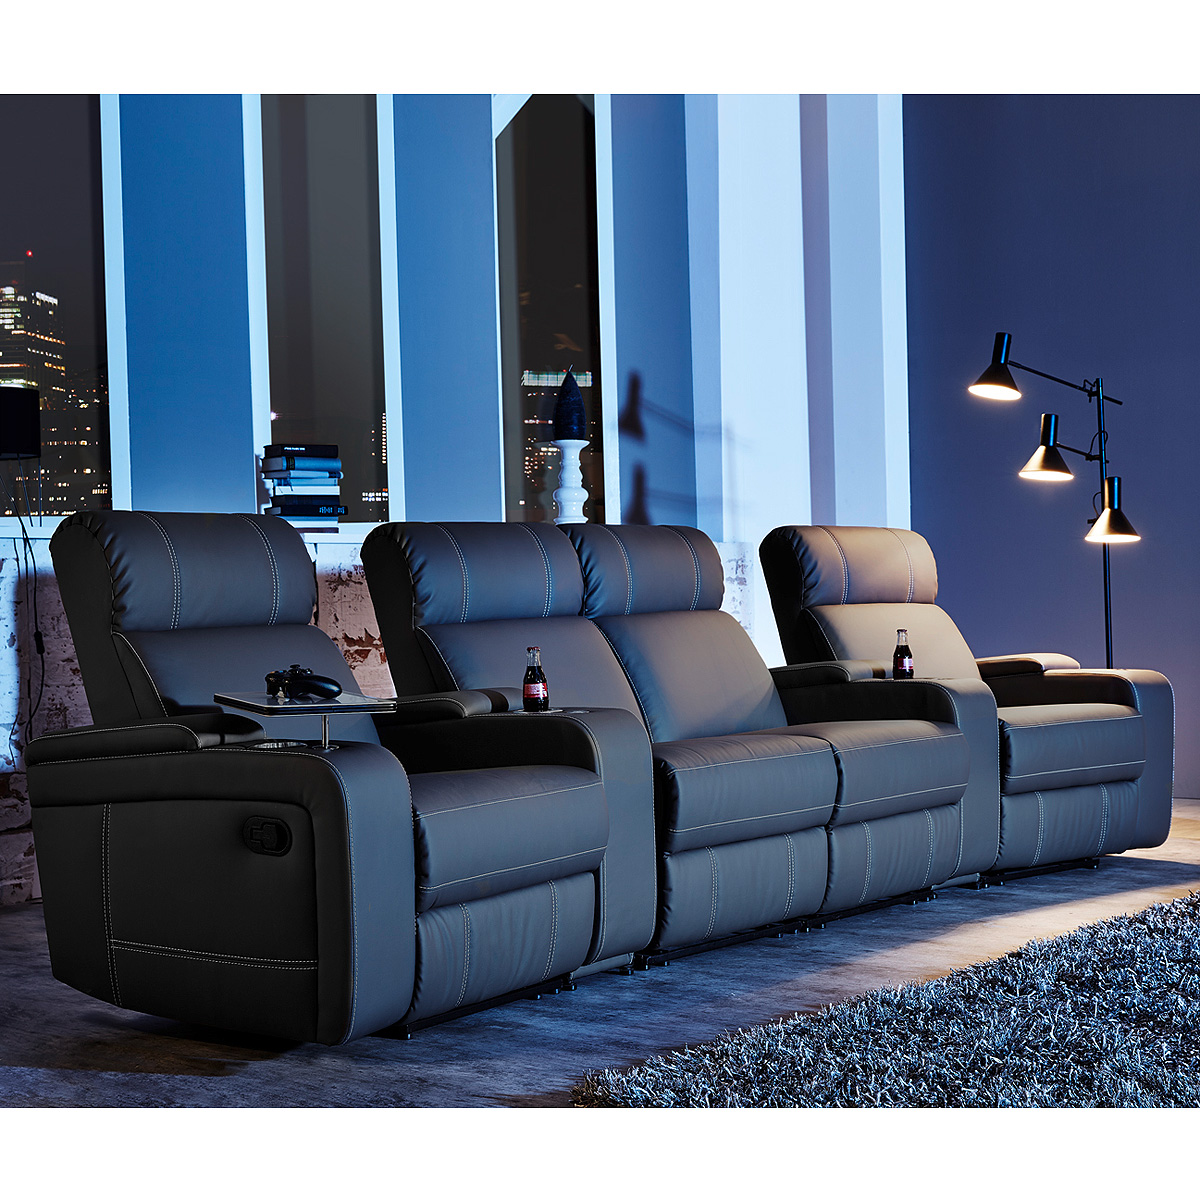 Getränkehalter Sessel Cinema Sessel Hollywood 4er Kinosessel Kinosofa Sofa